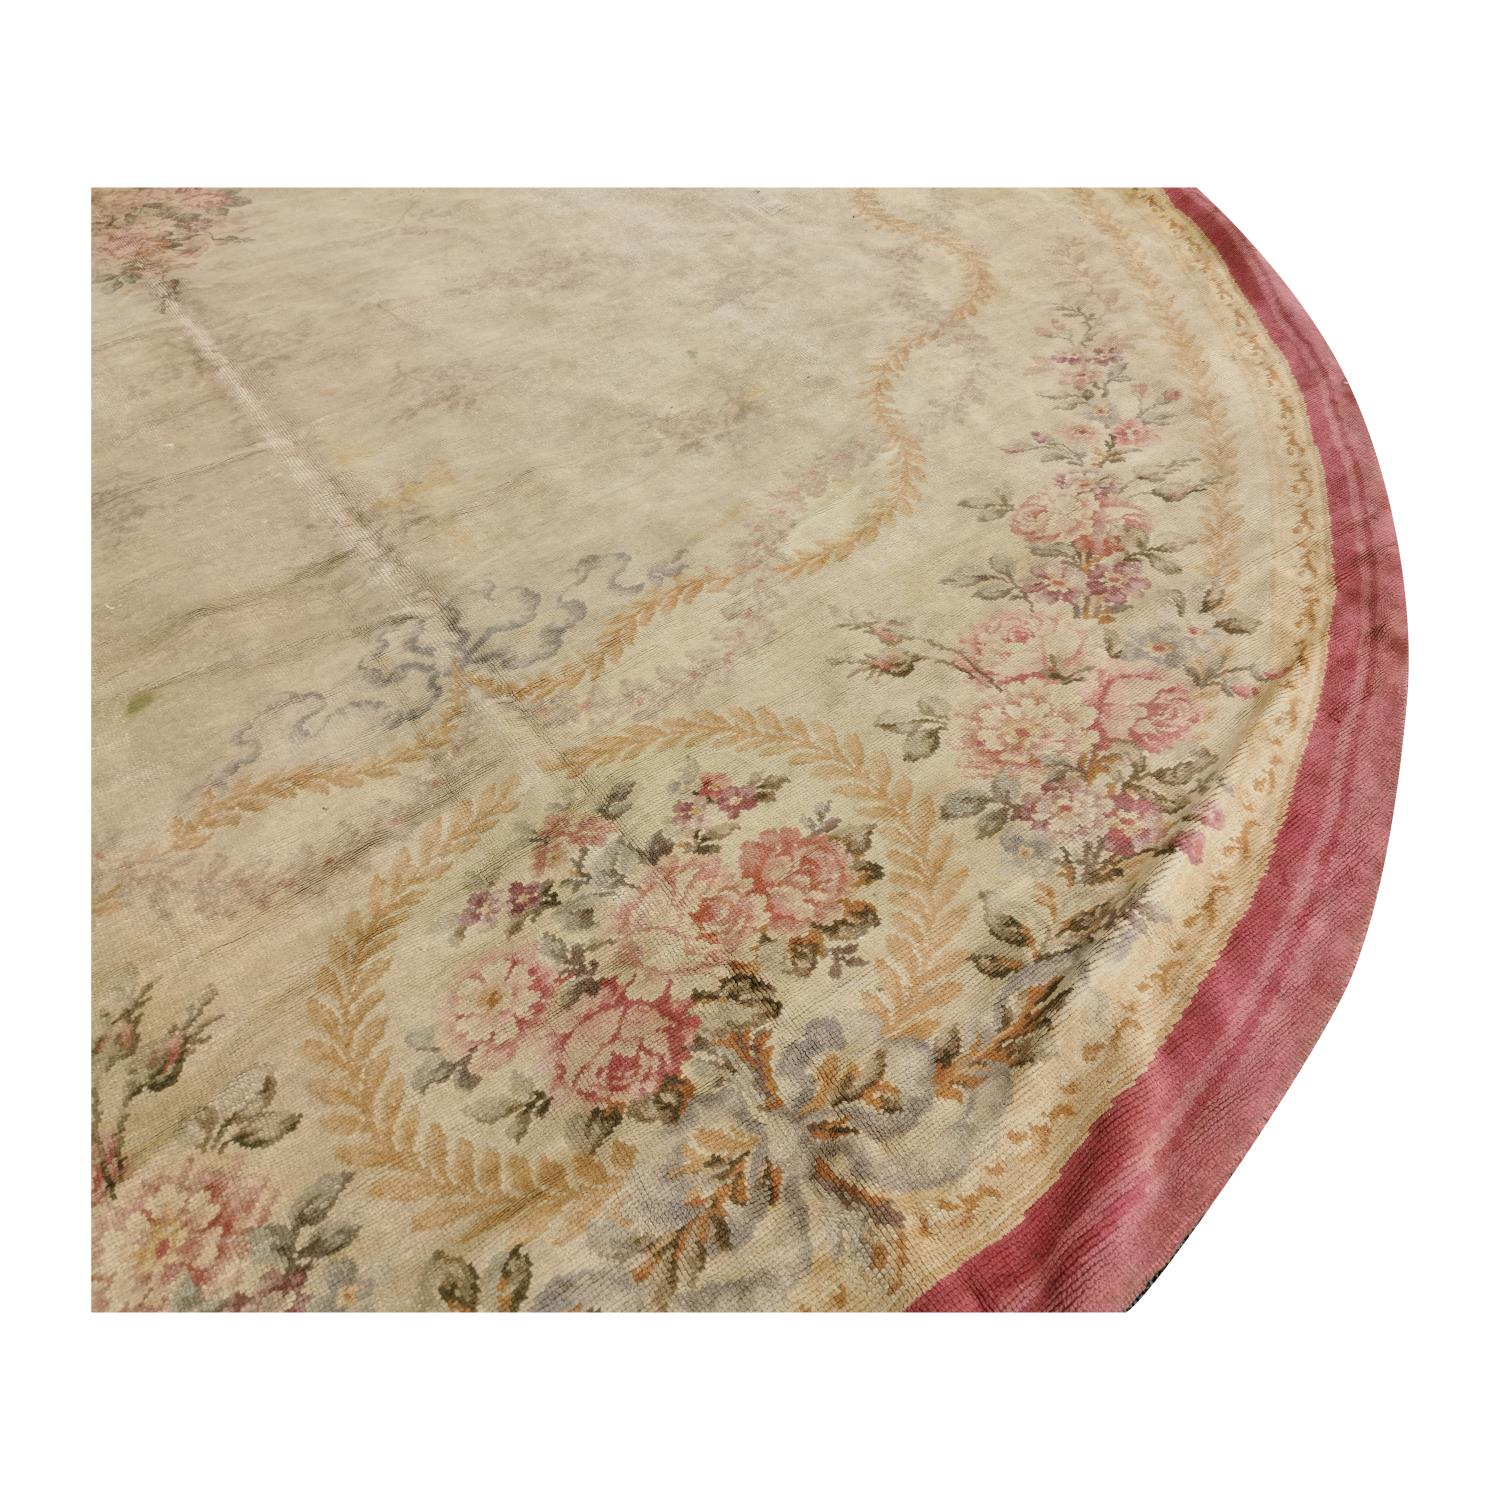 Large early 20th C. hand woven oval carpet. - Image 2 of 6